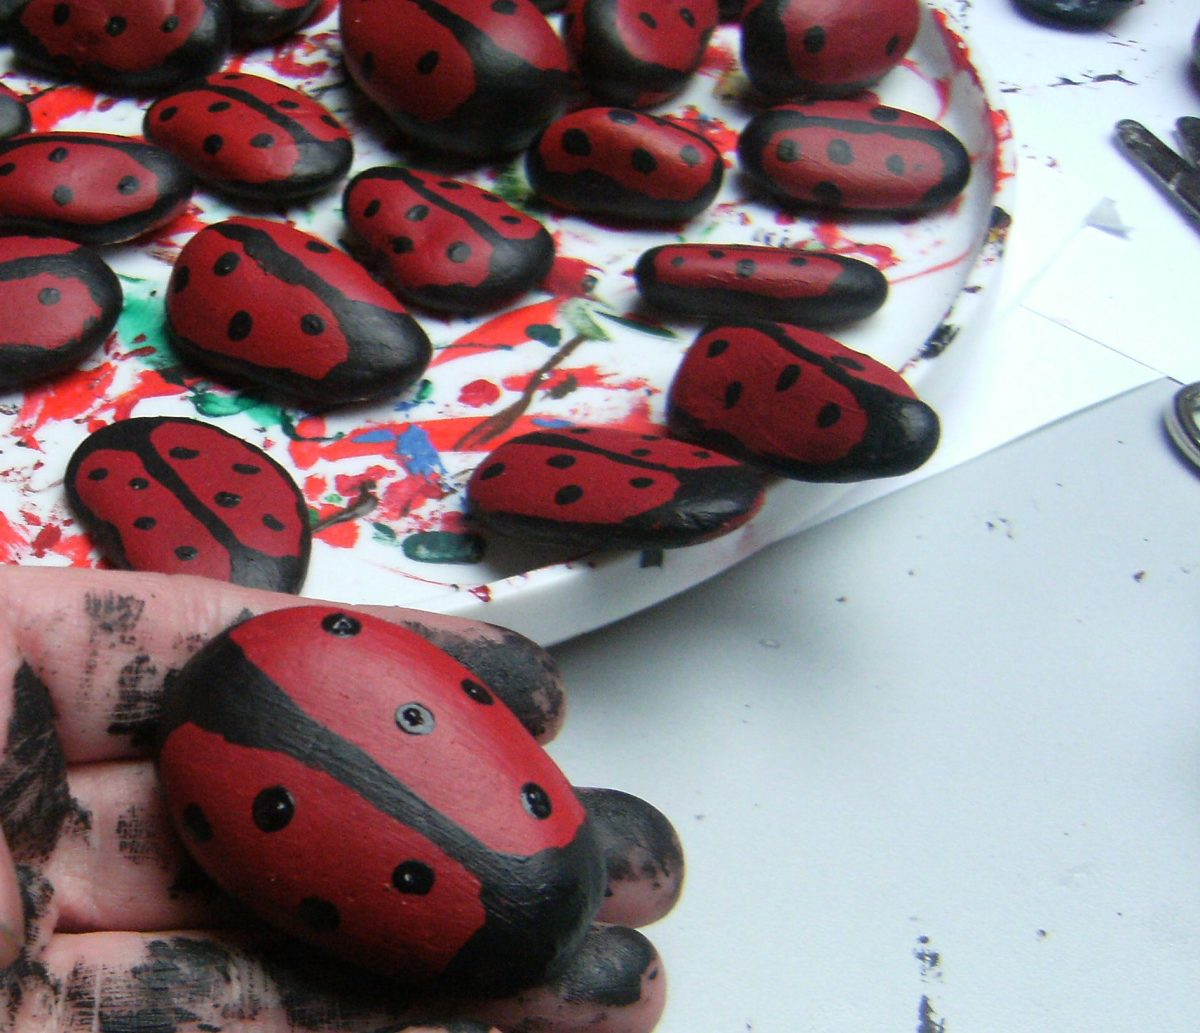 How to paint rocks to look like Ladybugs